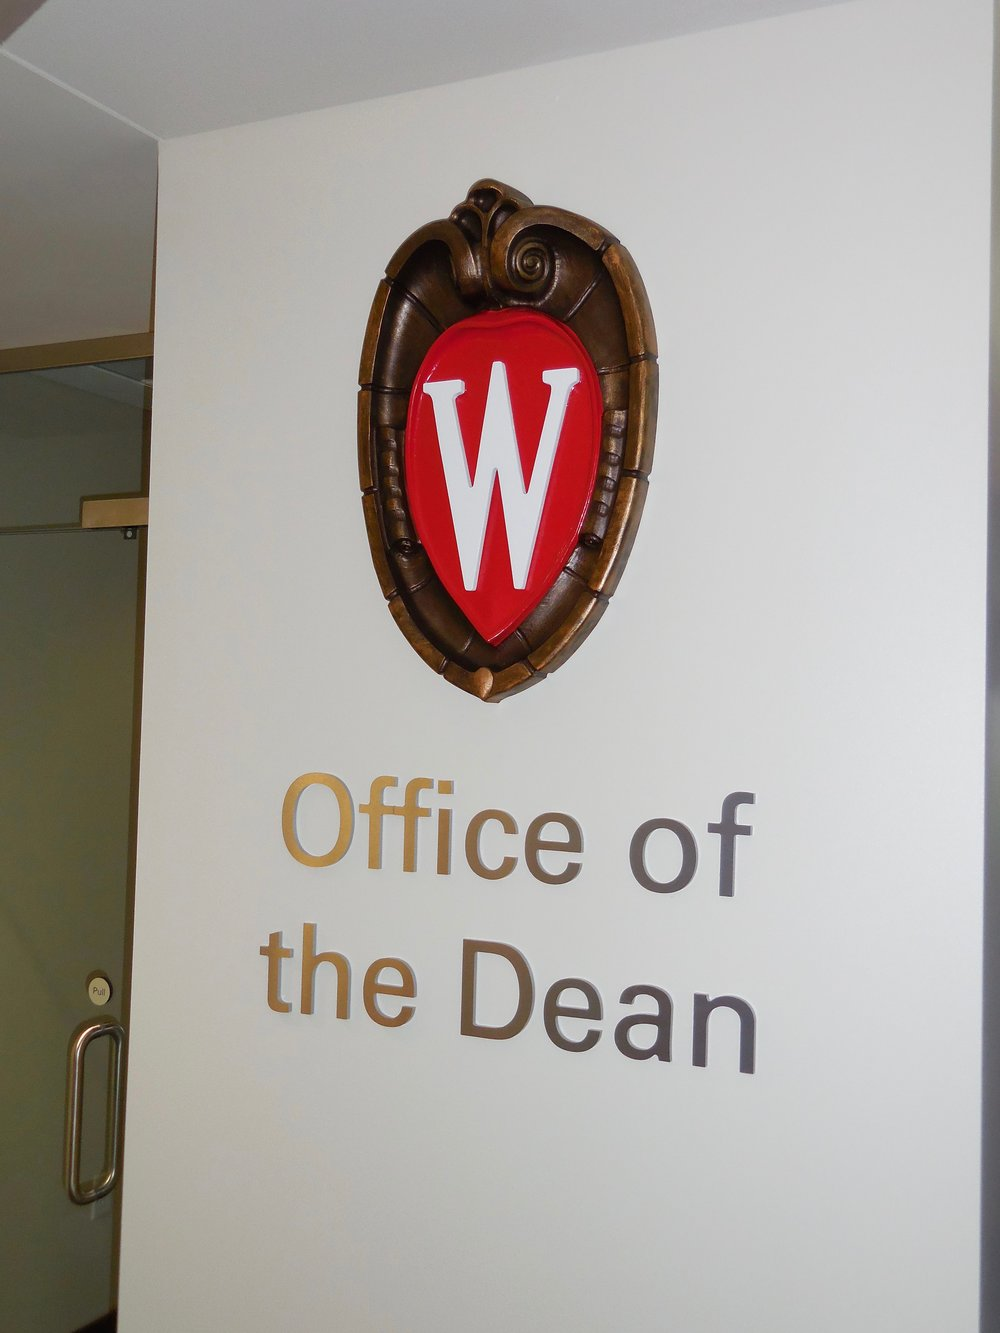 uw_office_of_dean.jpg